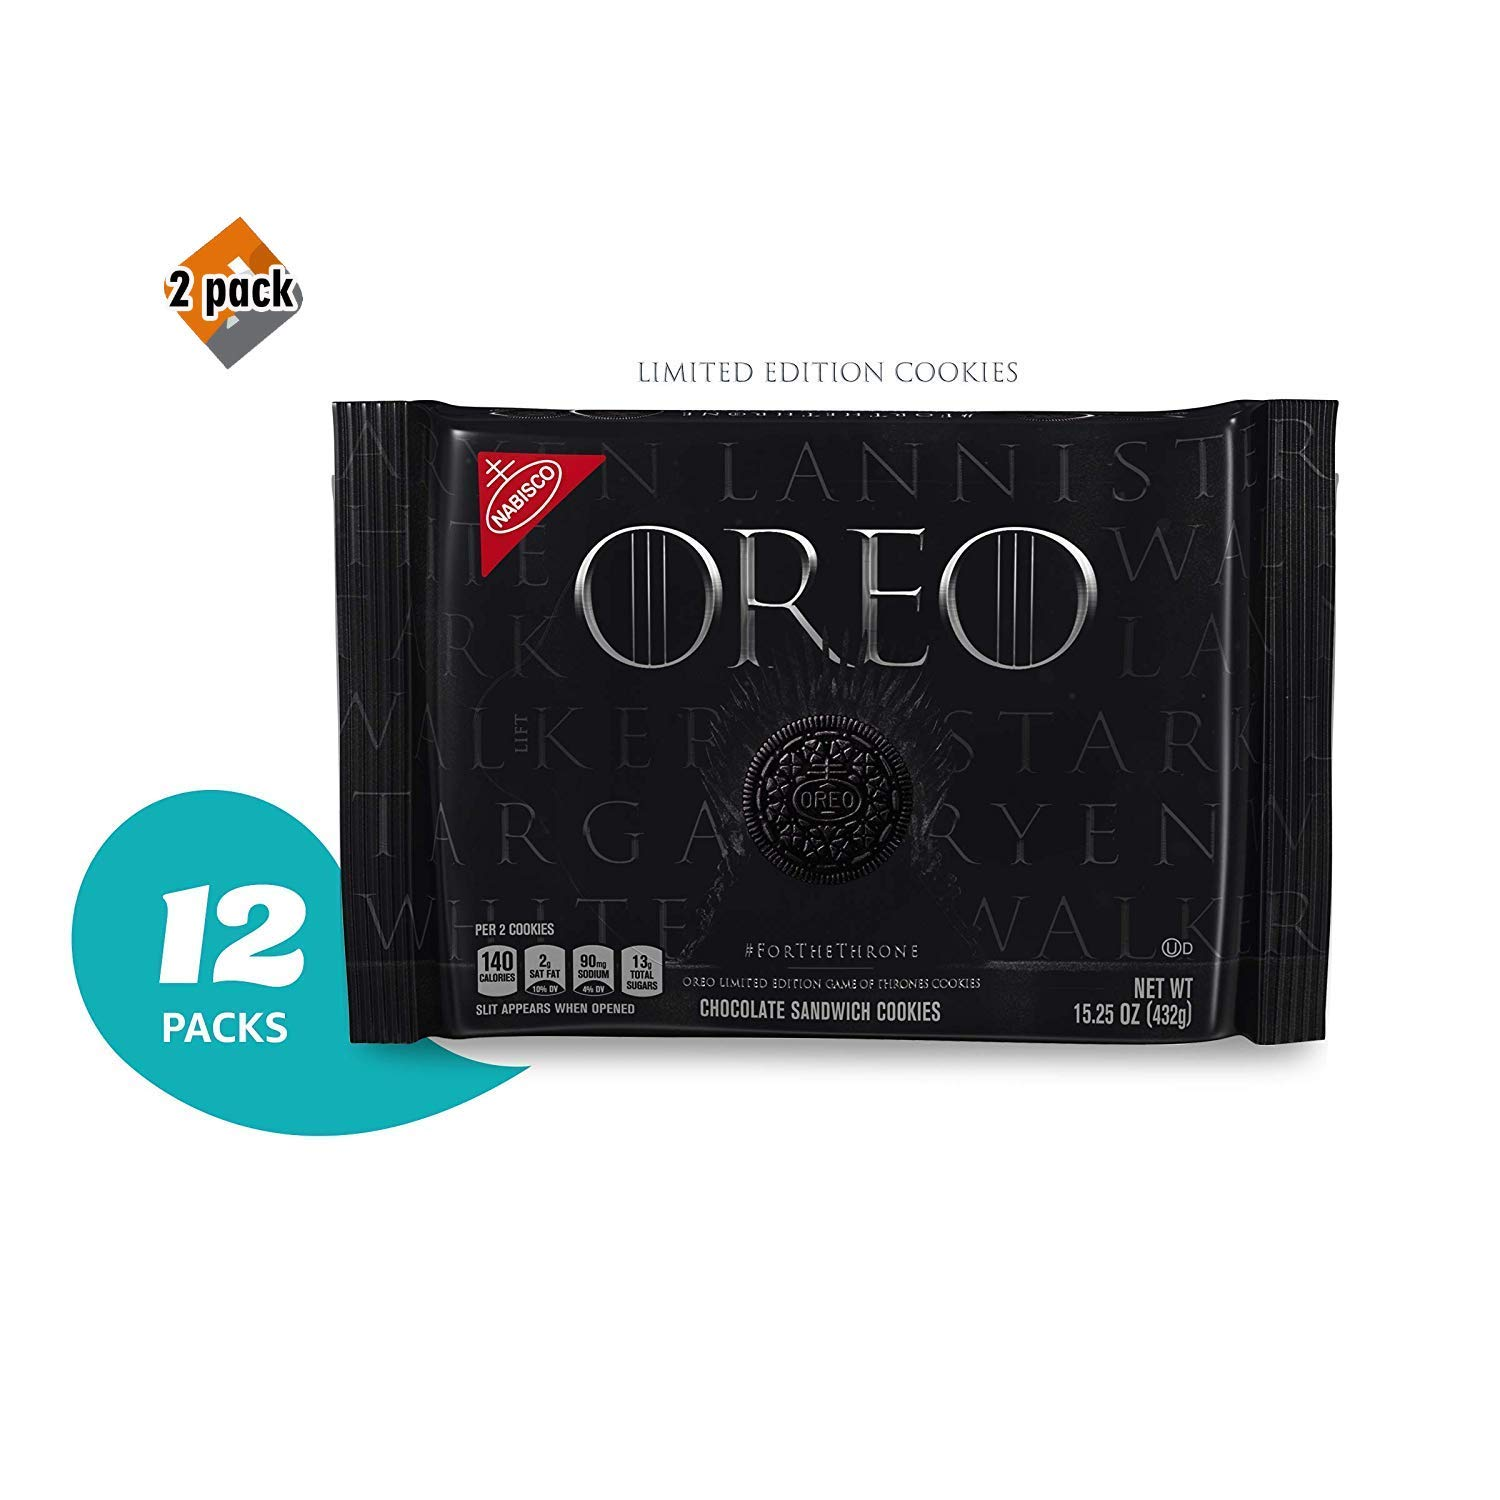 OREO Limited Edition Game of Thrones Themed Classic Chocolate Sandwich Cookies (Pack of 12) 2 Pack